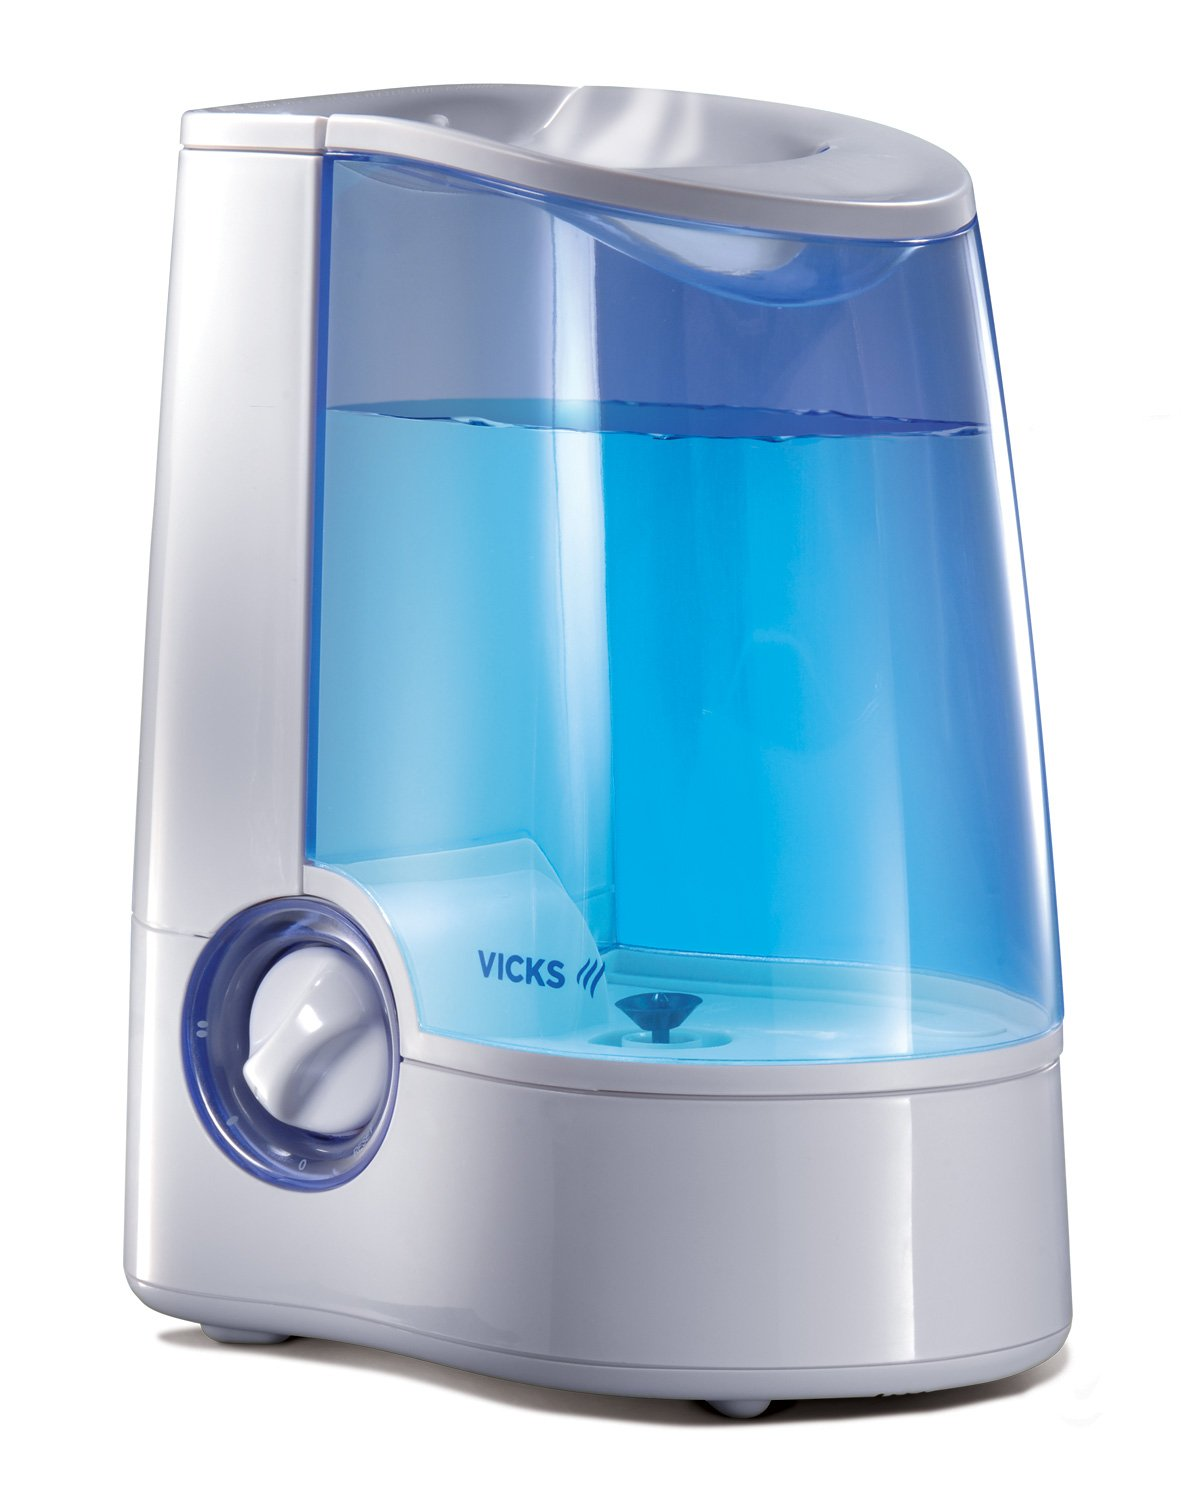 Vicks Warm Mist Humidifier with Auto Shut Off #158BB6